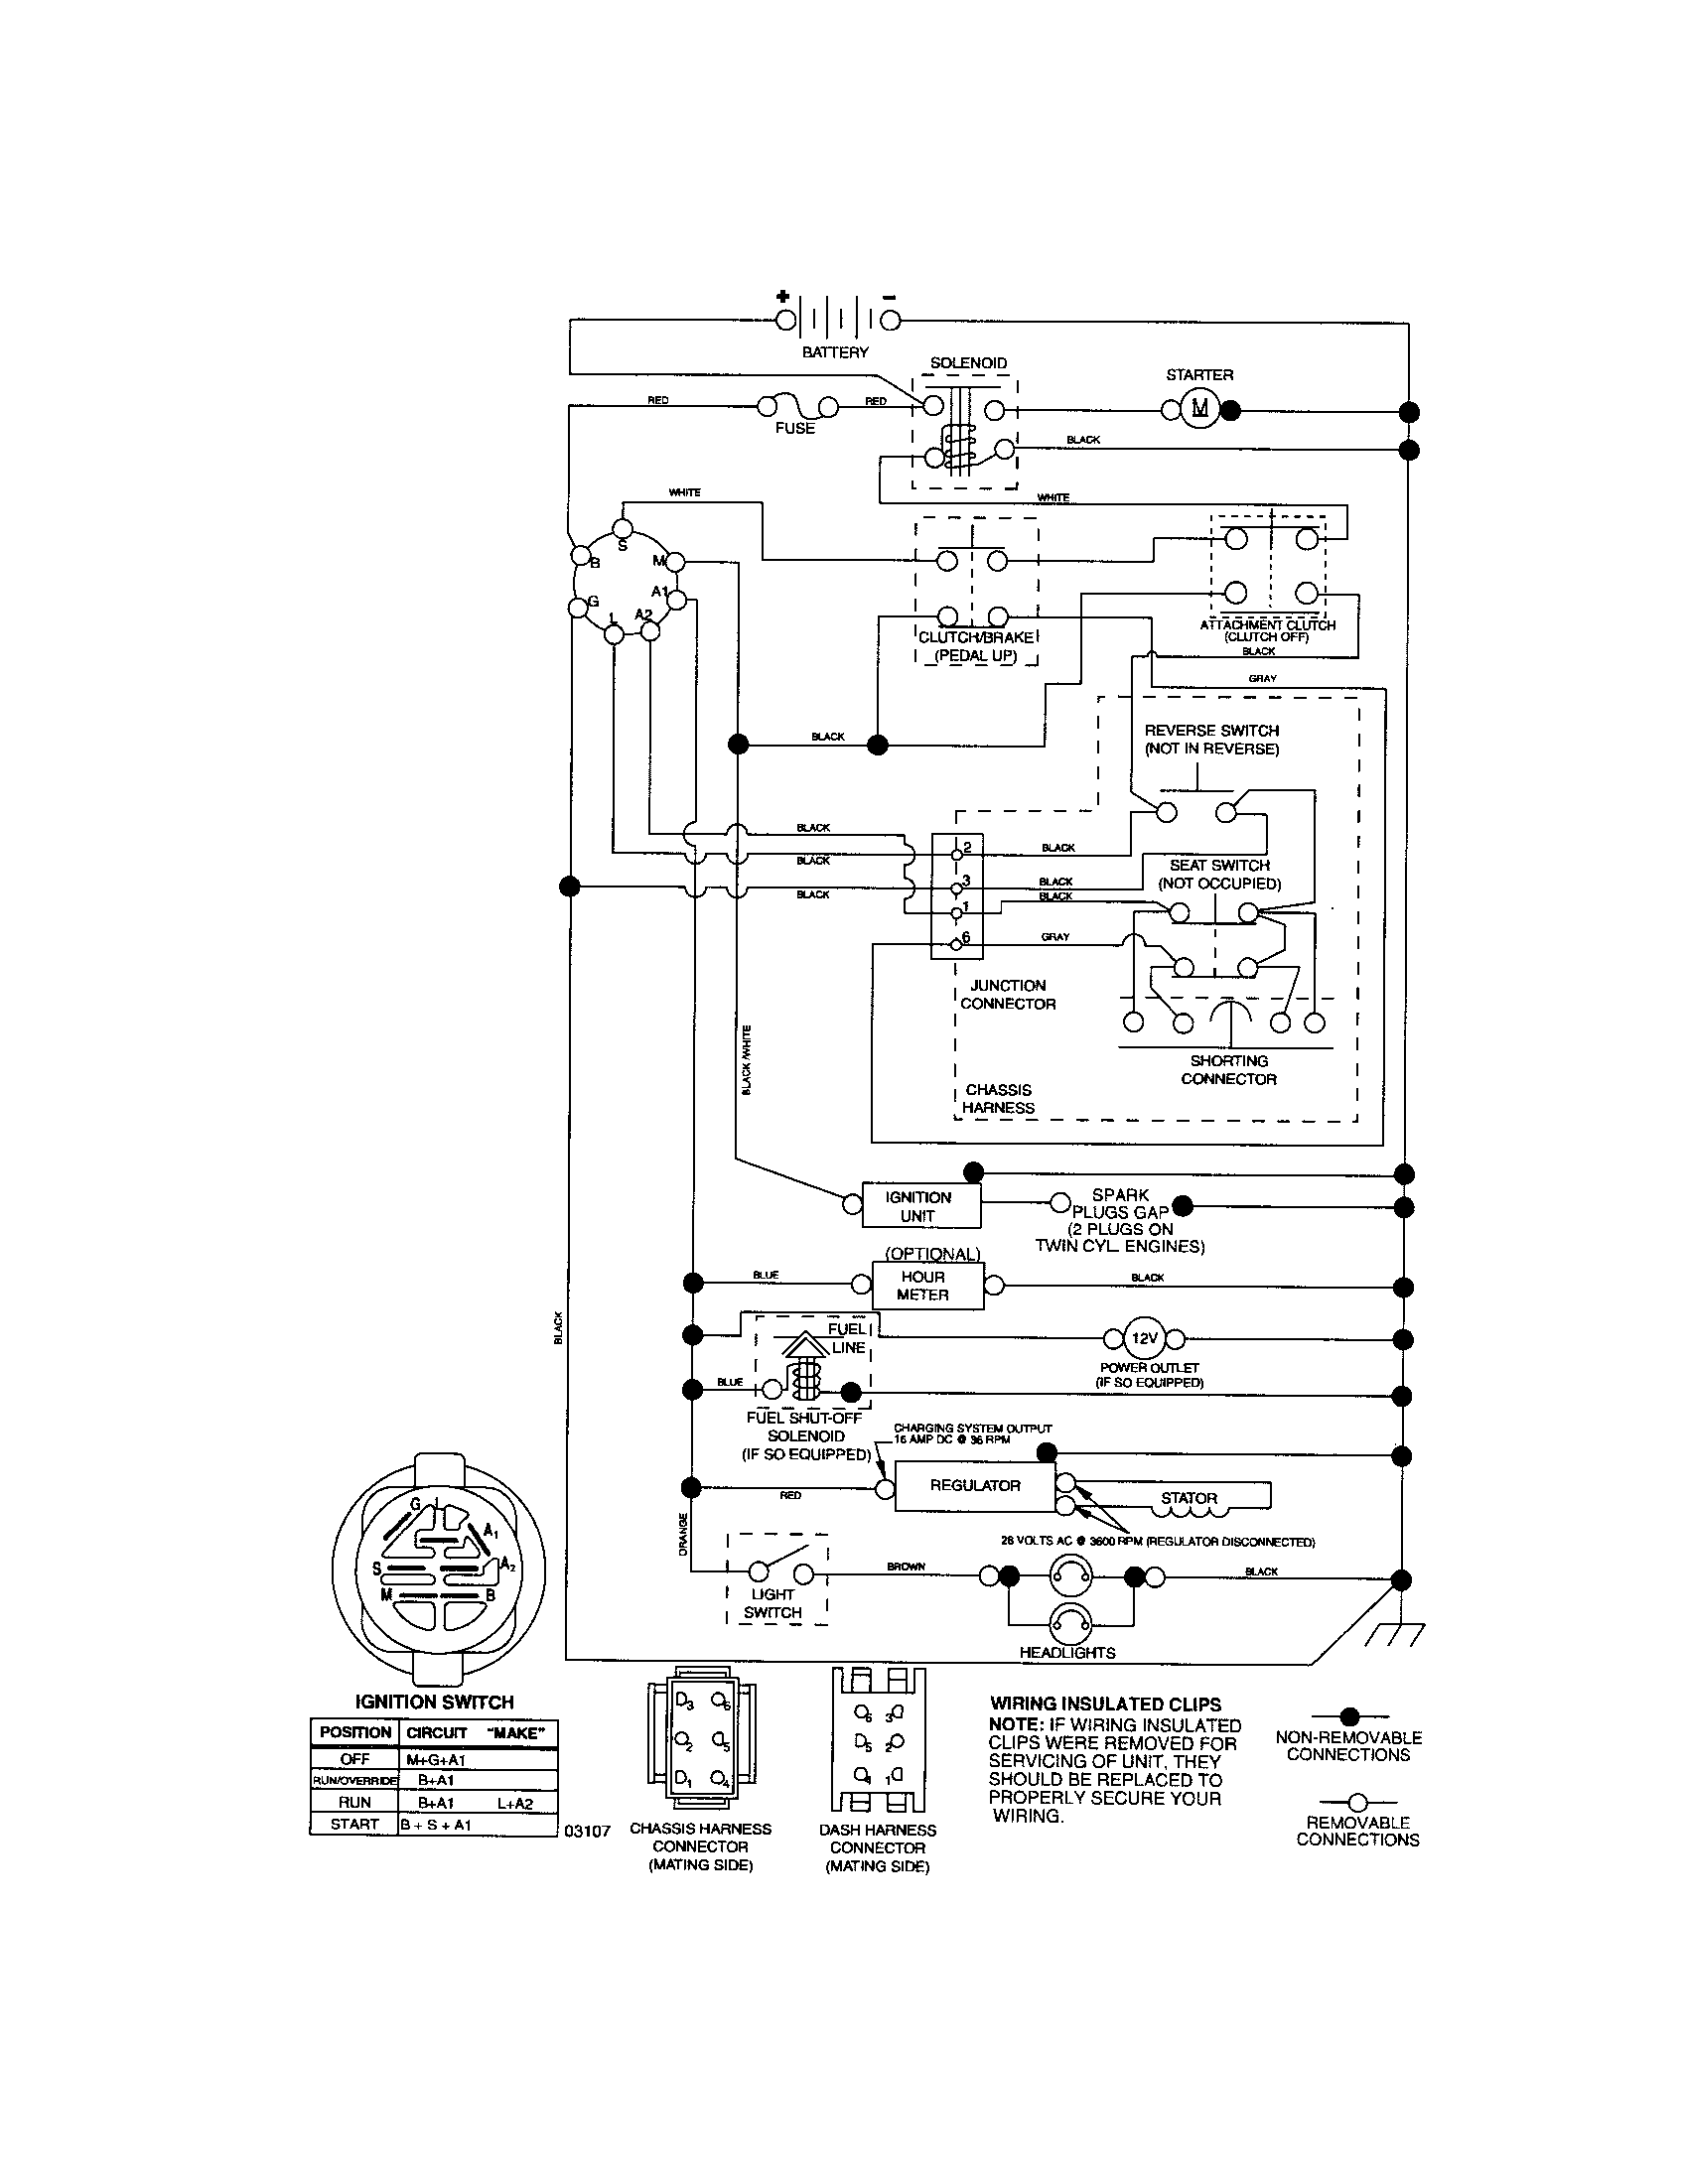 devilbiss air compressor wiring diagram wiring schematic diagram rh 114 uggs outlet co